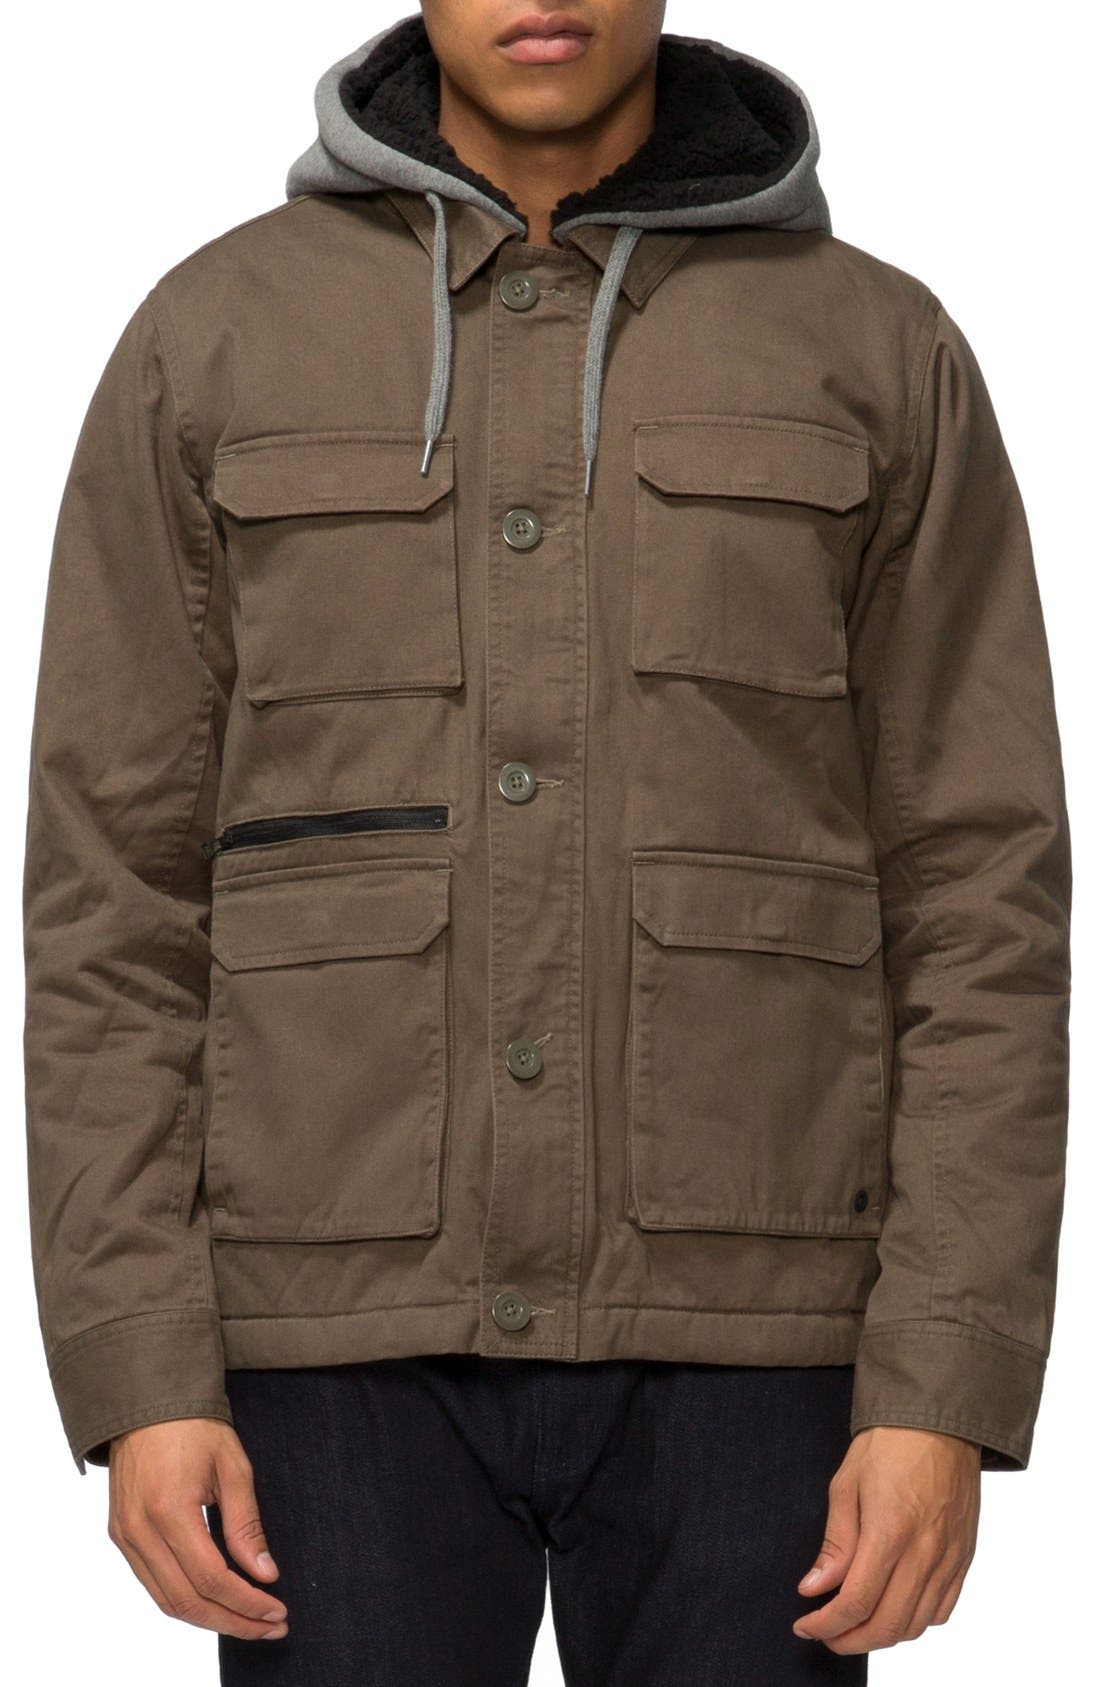 Droogs Plus Field Jacket with Detachable Hood,                             Main thumbnail 1, color,                             Olive/ Heather Grey